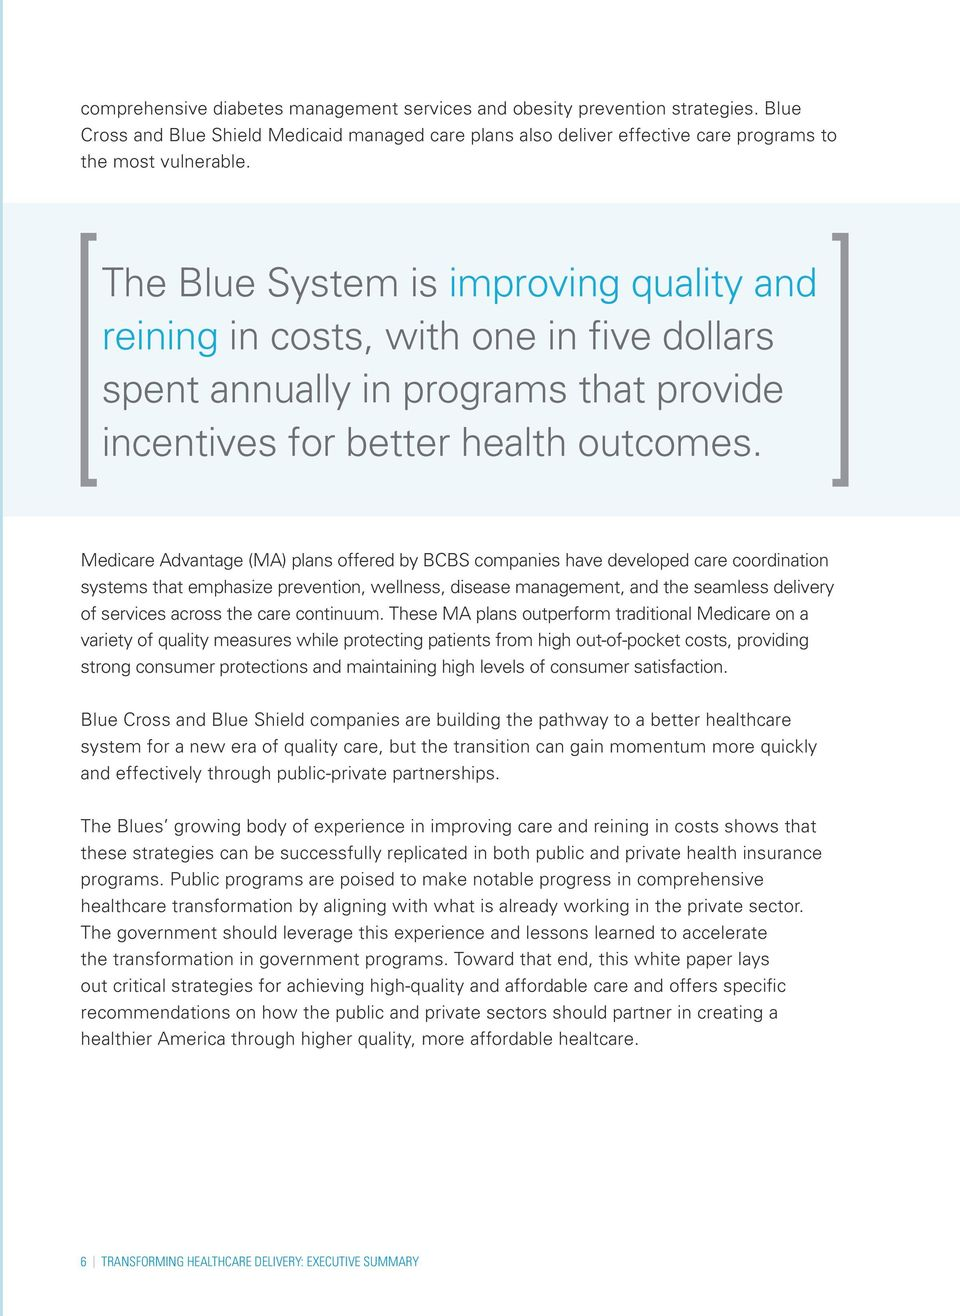 Medicare Advantage (MA) plans offered by BCBS companies have developed care coordination systems that emphasize prevention, wellness, disease management, and the seamless delivery of services across